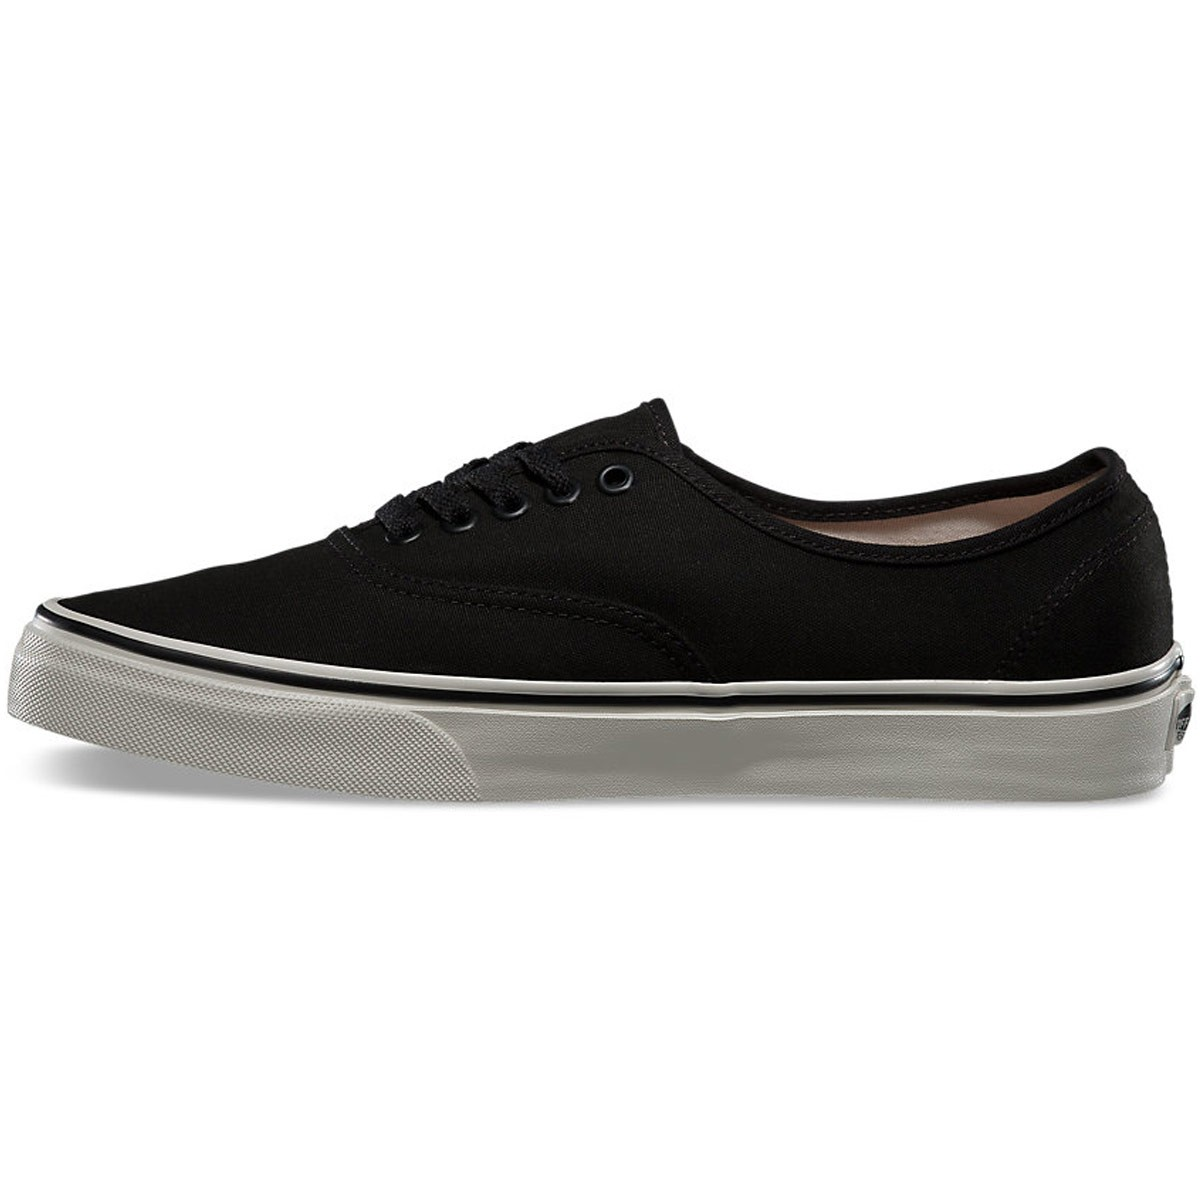 972b87c4d45993 Vans Authentic Sport Vintage Shoes - Black - 9.5